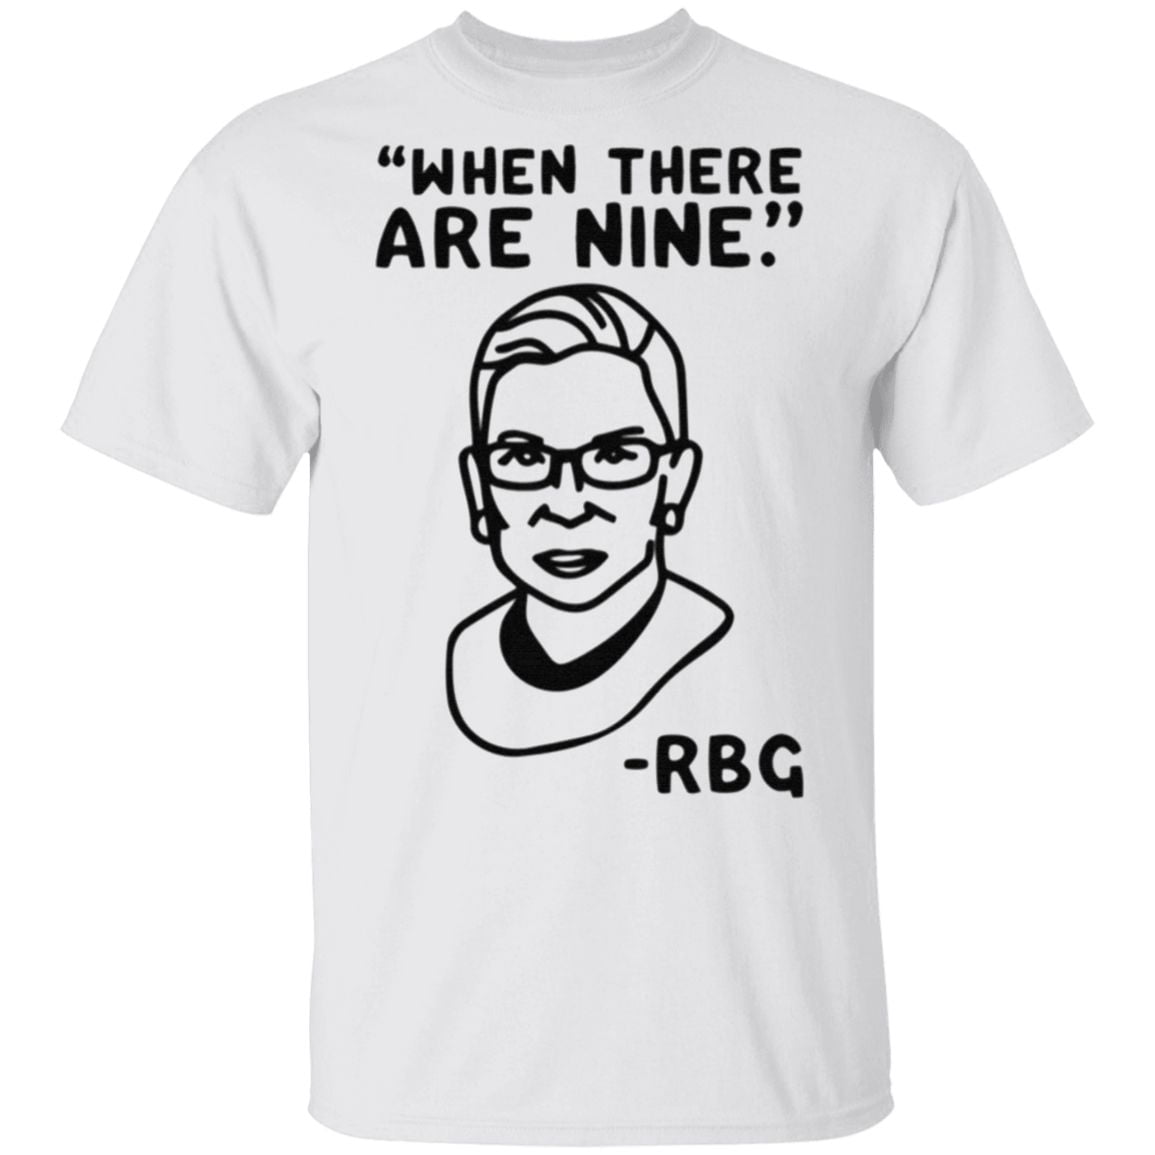 when there are nine rbg t shirt